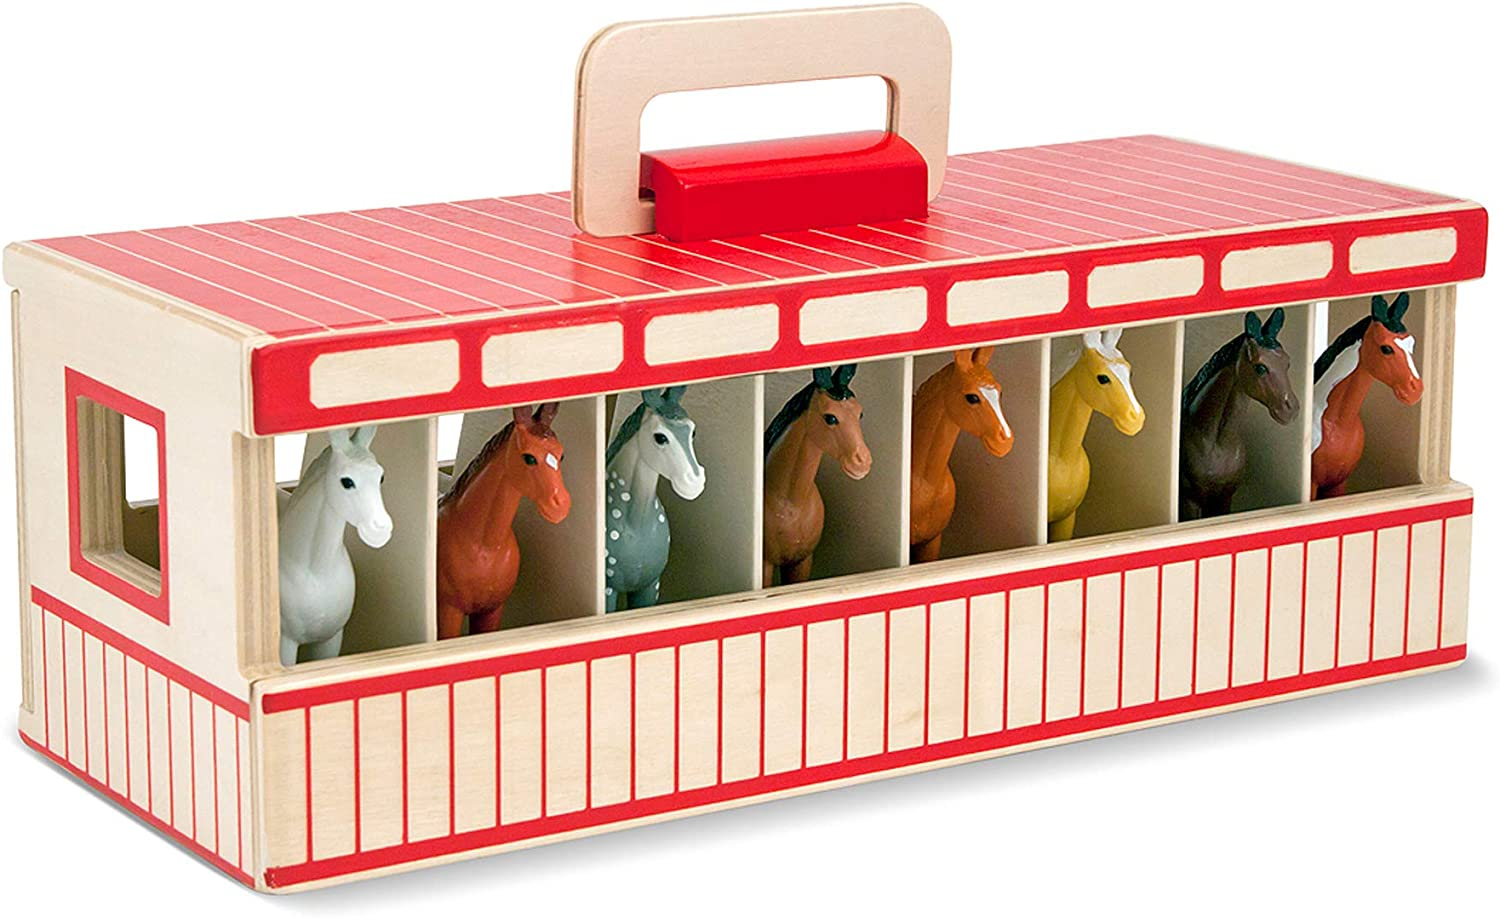 B00A8DJ06O Melissa & Doug Take-Along Show-Horse Stable Play Set (Pretend Play, Encourages Creative Learning, 8 Toy Horses, Great Gift for Girls and Boys - Best for 3, 4, 5 Year Olds and Up) 71H1bFOL40L